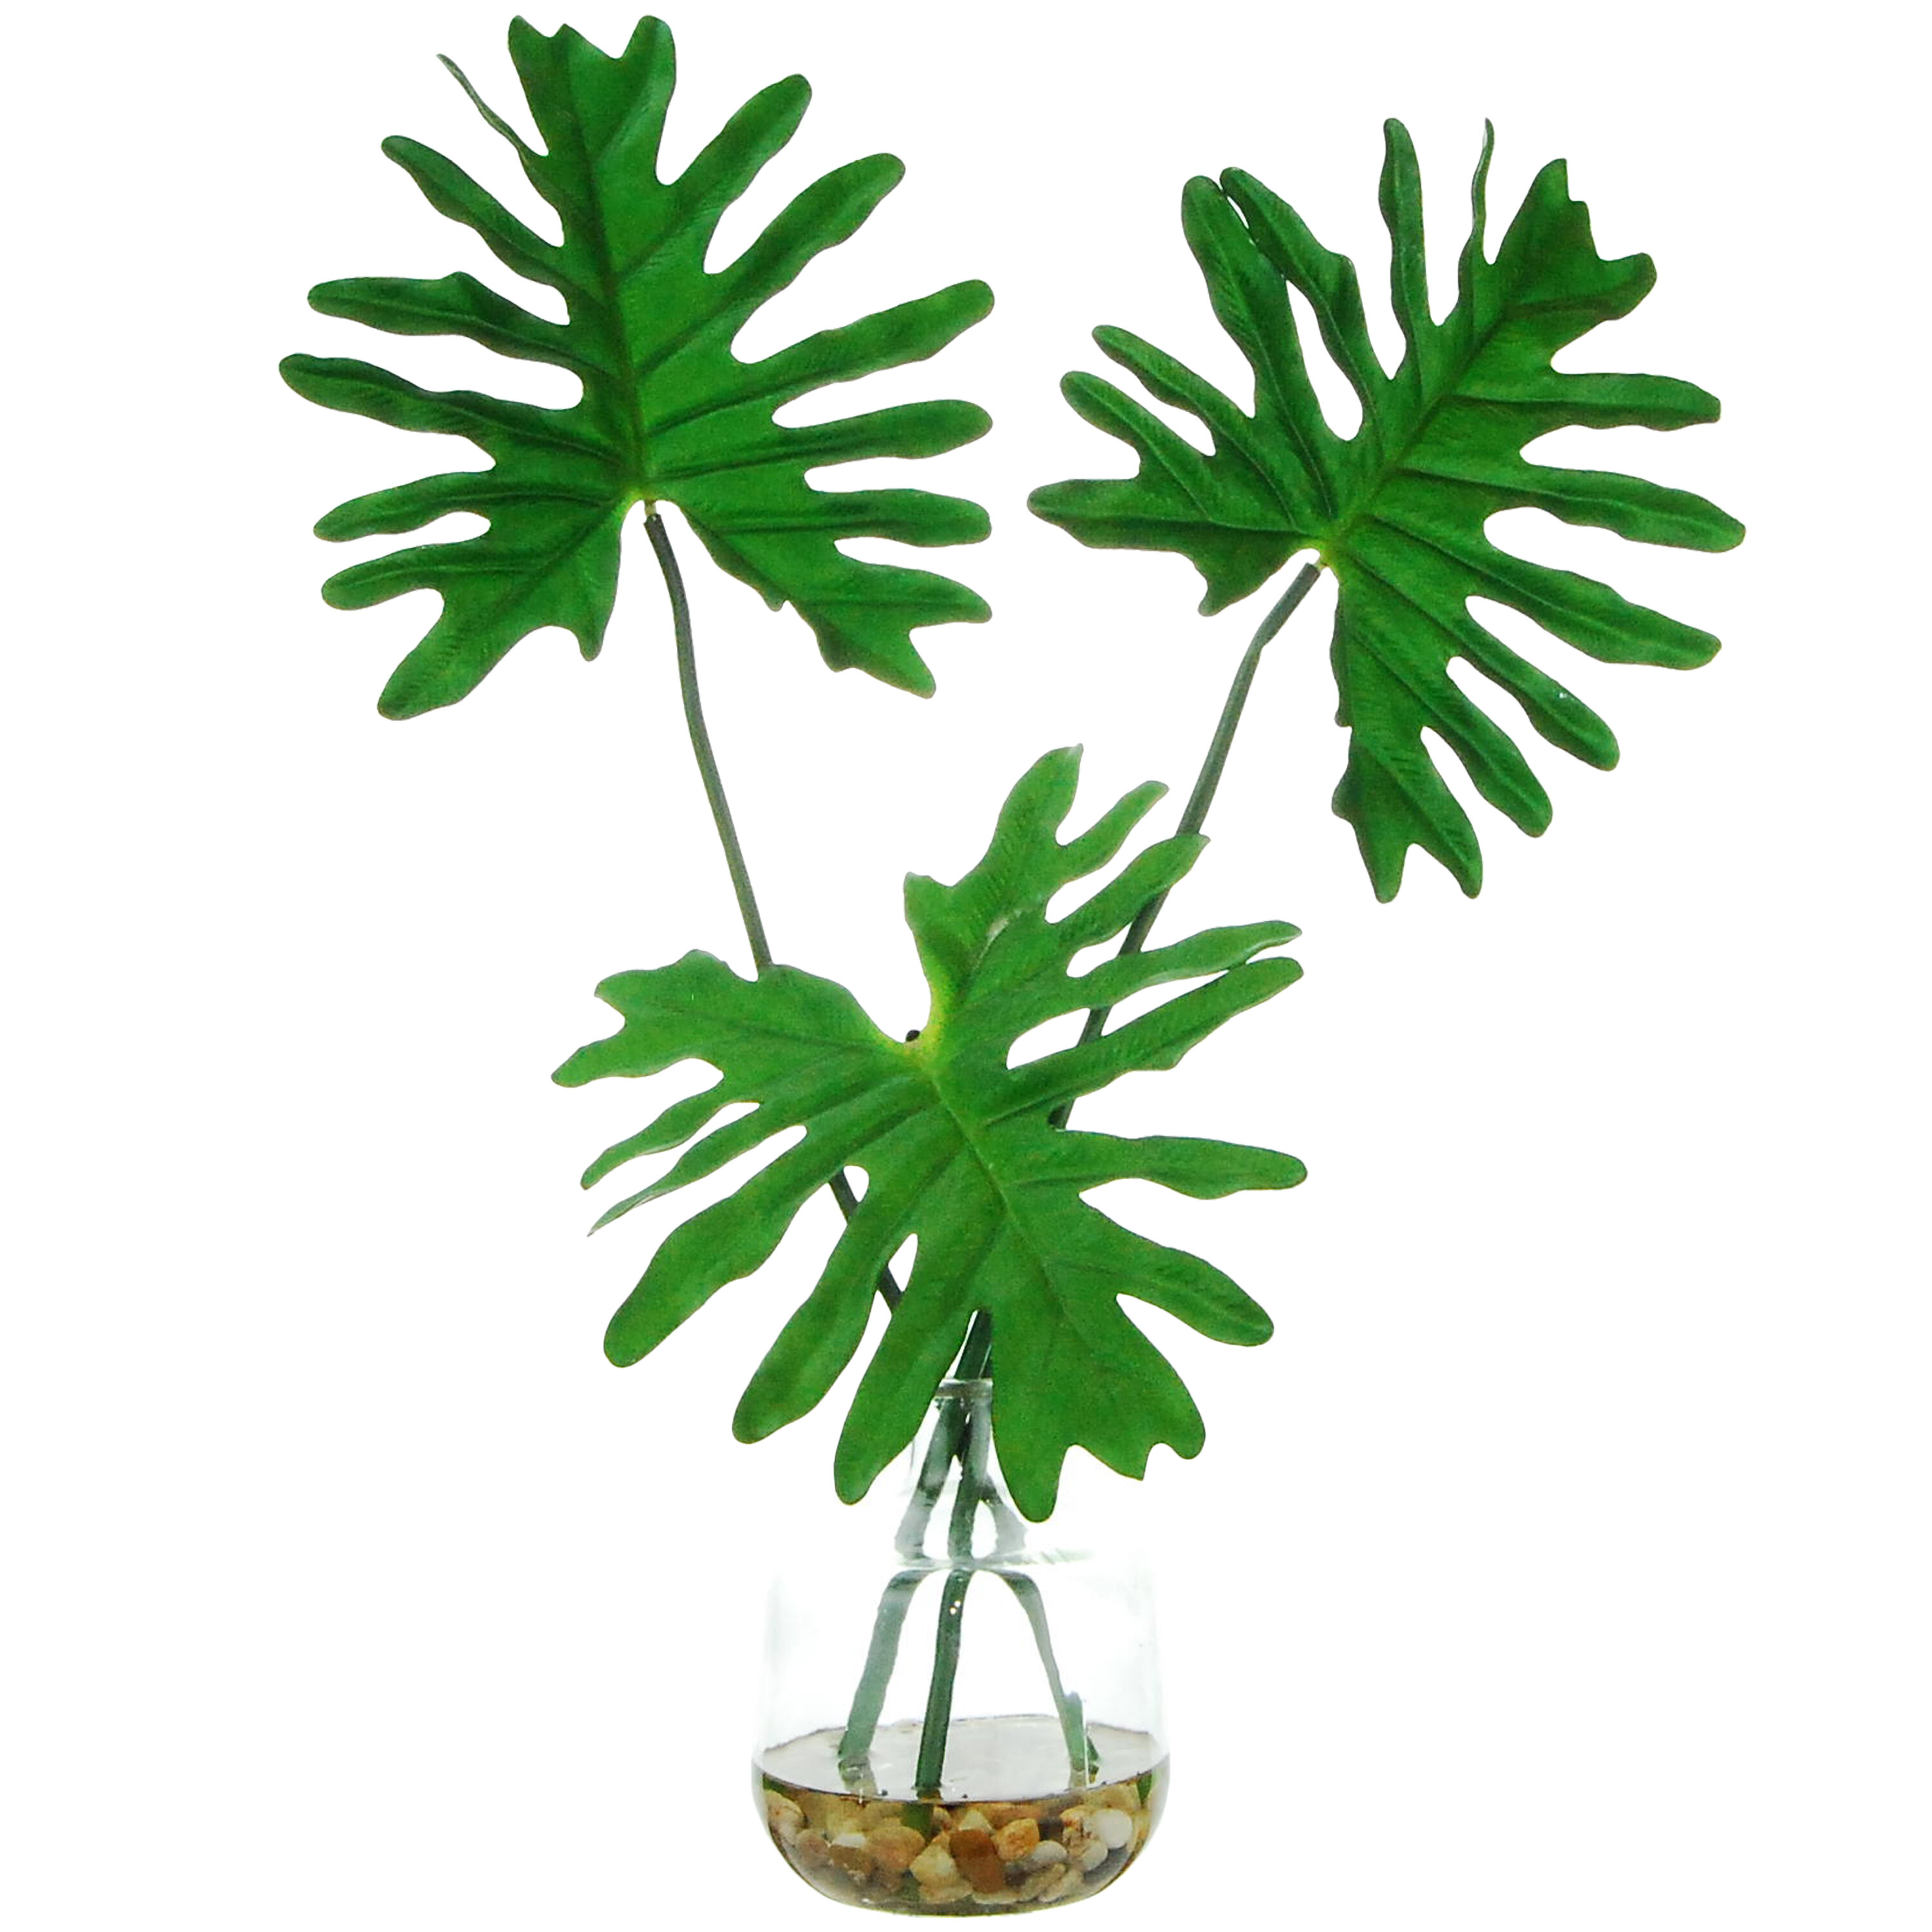 Bay Isle Home Tropical Leaves Desktop Foliage Plant In Clear Glass Vase Reviews Wayfair Download in under 30 seconds. tropical leaves desktop foliage plant in clear glass vase